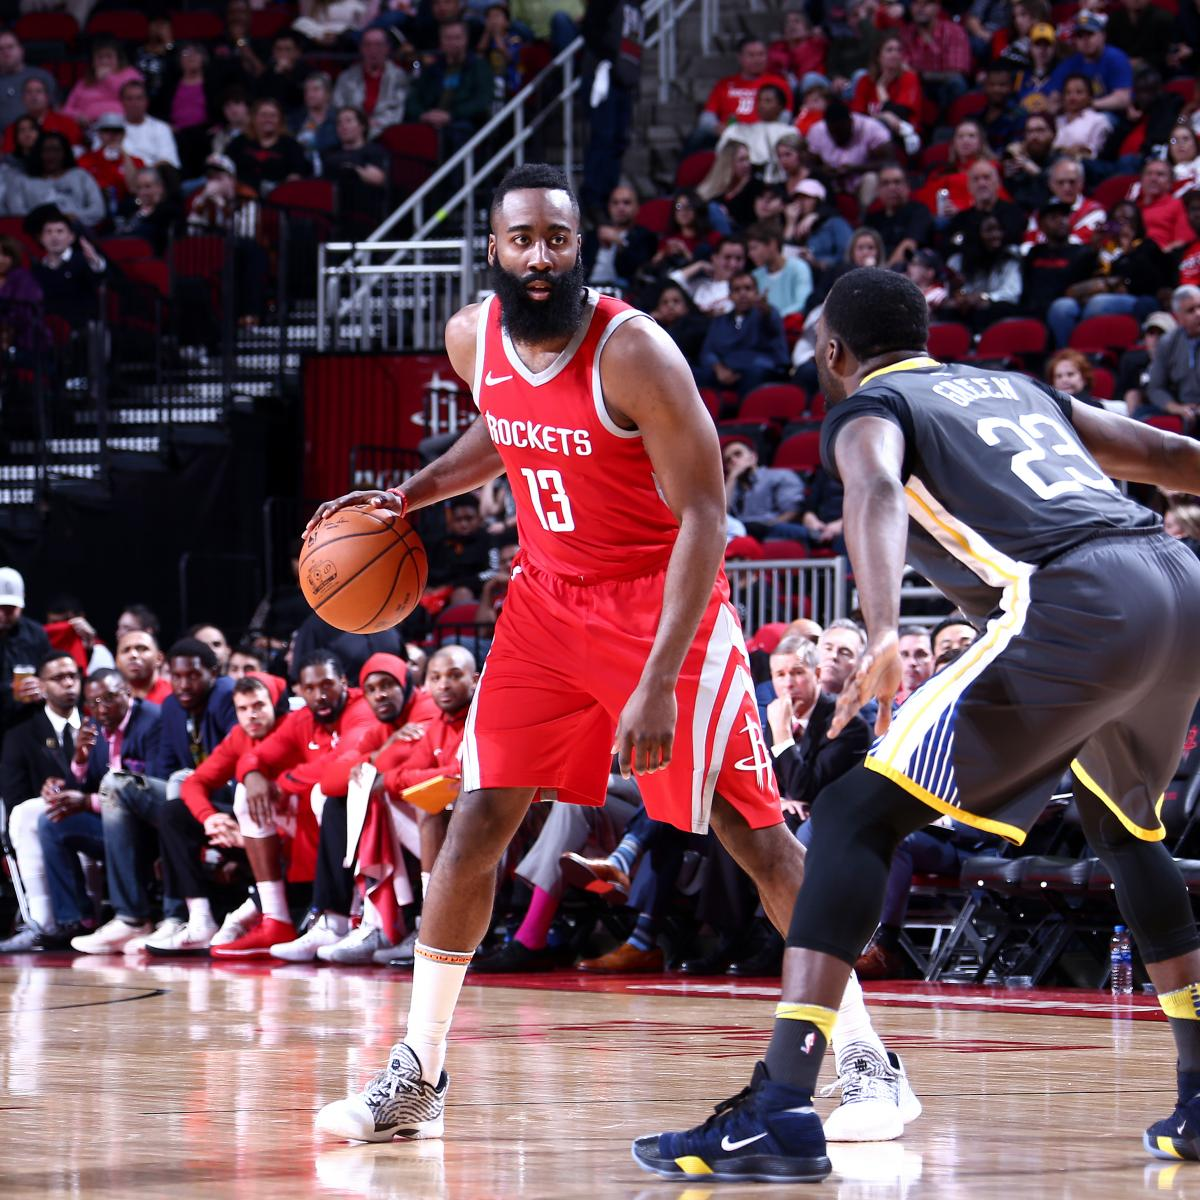 Rockets And The Warriors Game: James Harden Leads Rockets To Tight Win Over Kevin Durant